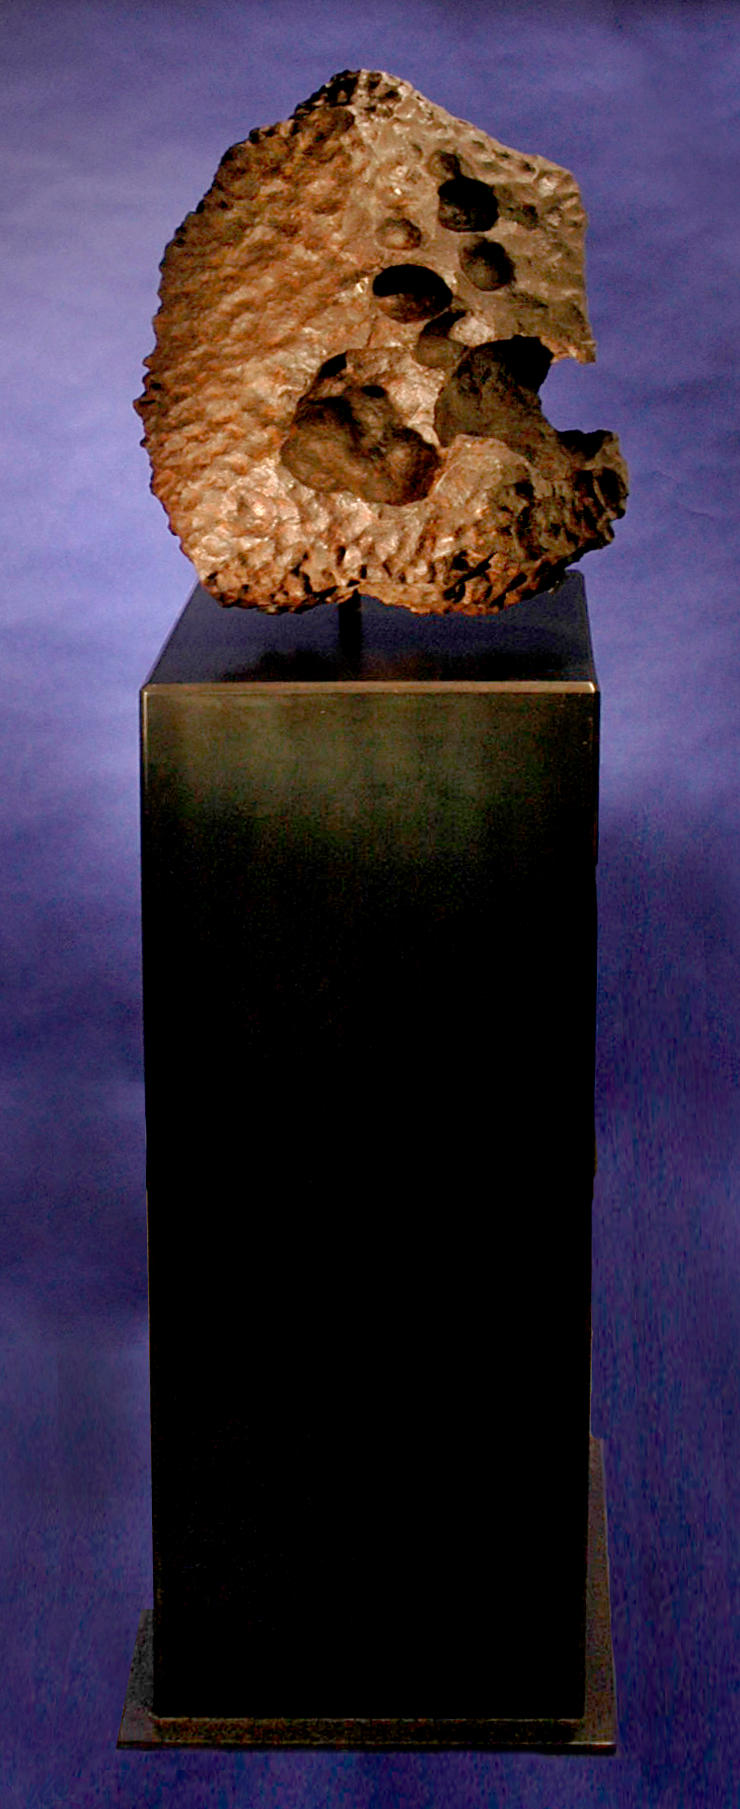 Aesthetic Gibeon Meteorite —Among the Finest Iron Meteorites and a Matchless Objet d'Art